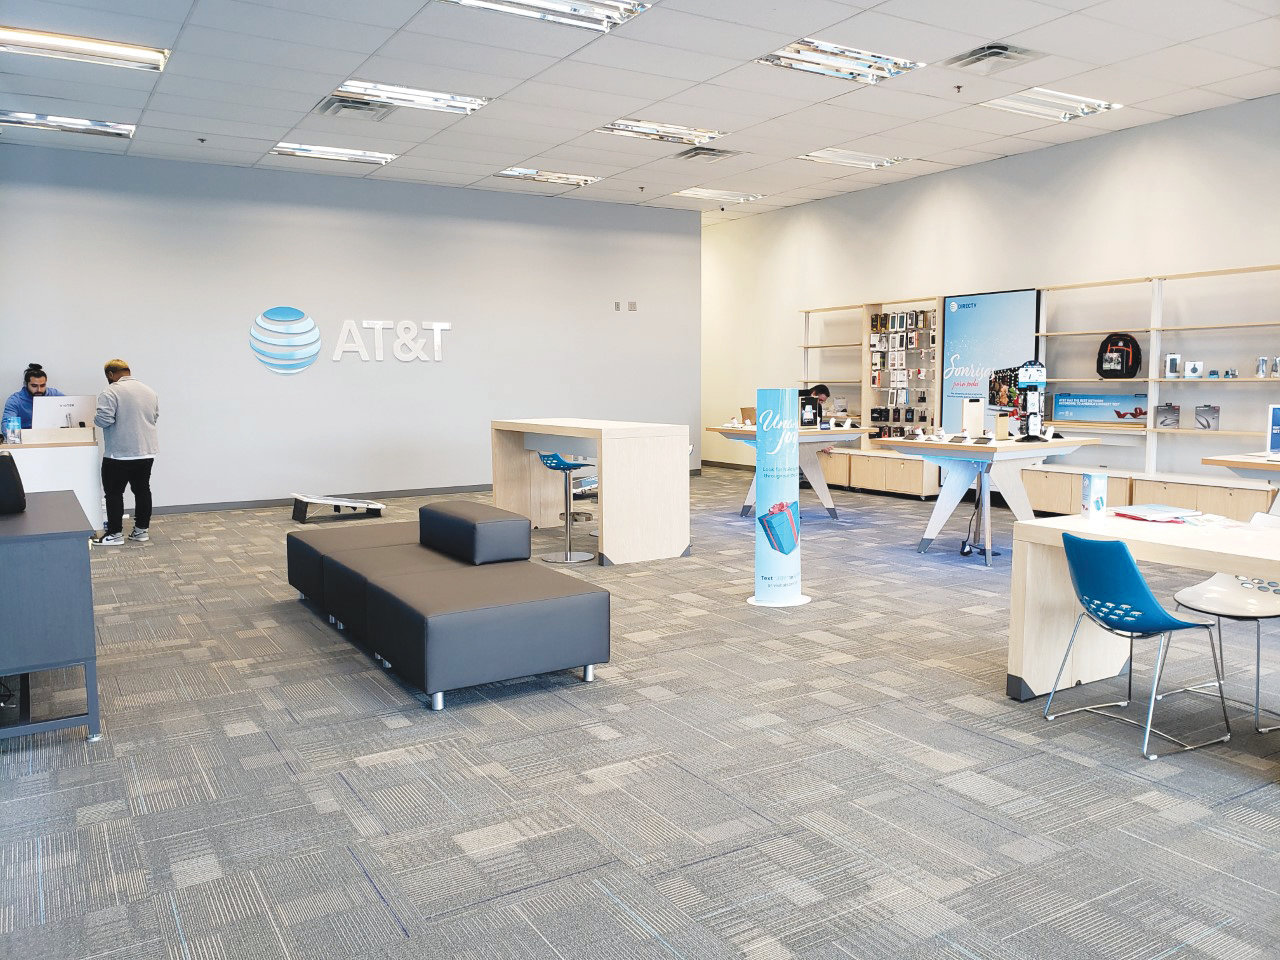 AT&T has opened a new Studio Store in Glendale, located at 5849 W. Northern Ave. [Submitted photo]